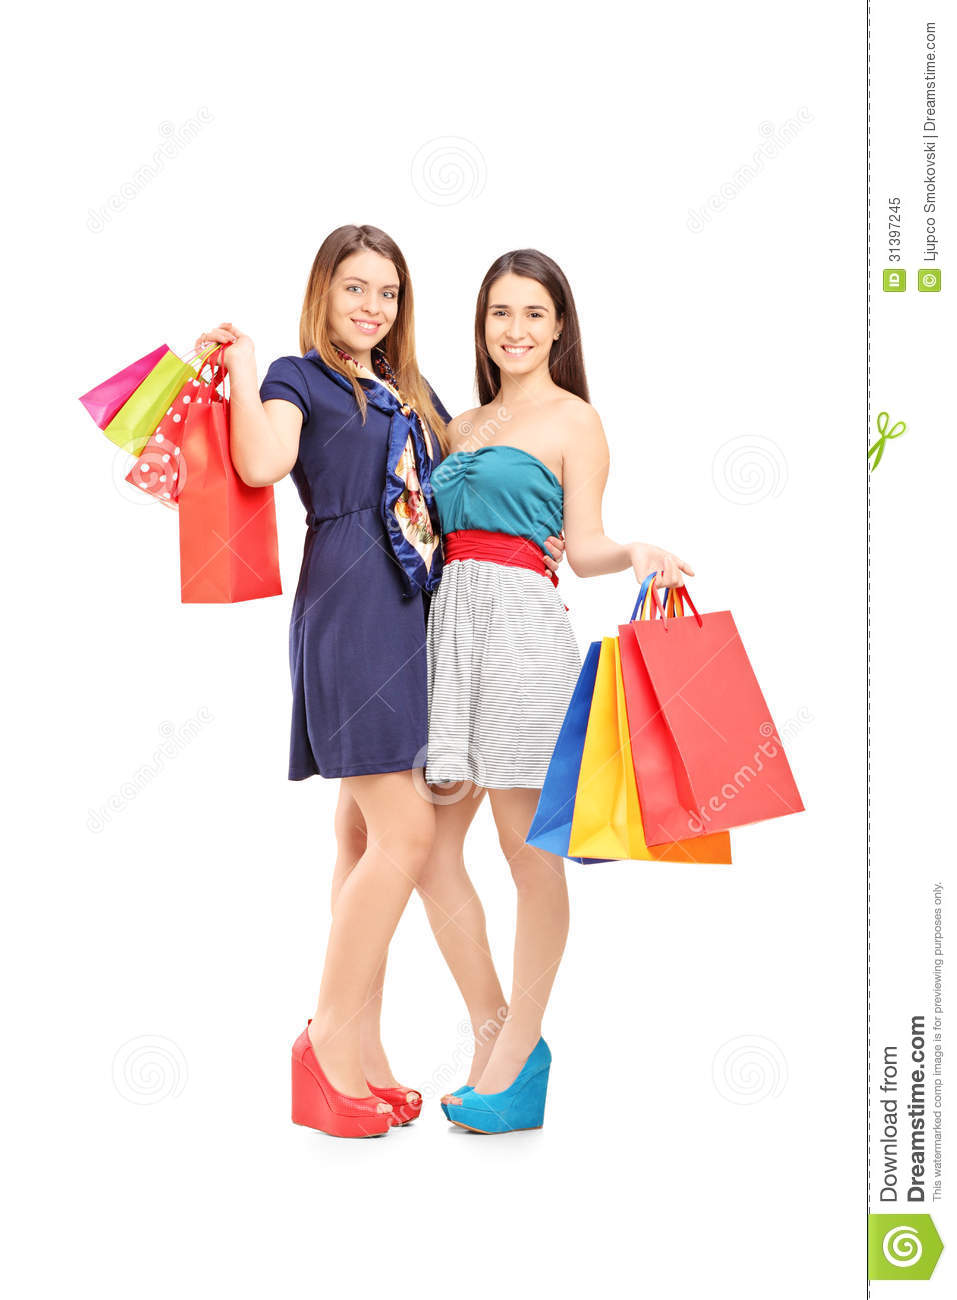 Woman posing with shopping bags isolated on white background full - Full Length Portrait Of Two Female Friends Holding Shopping Bags Royalty Free Stock Photo Background Female Full Holding Isolated Portrait Posing